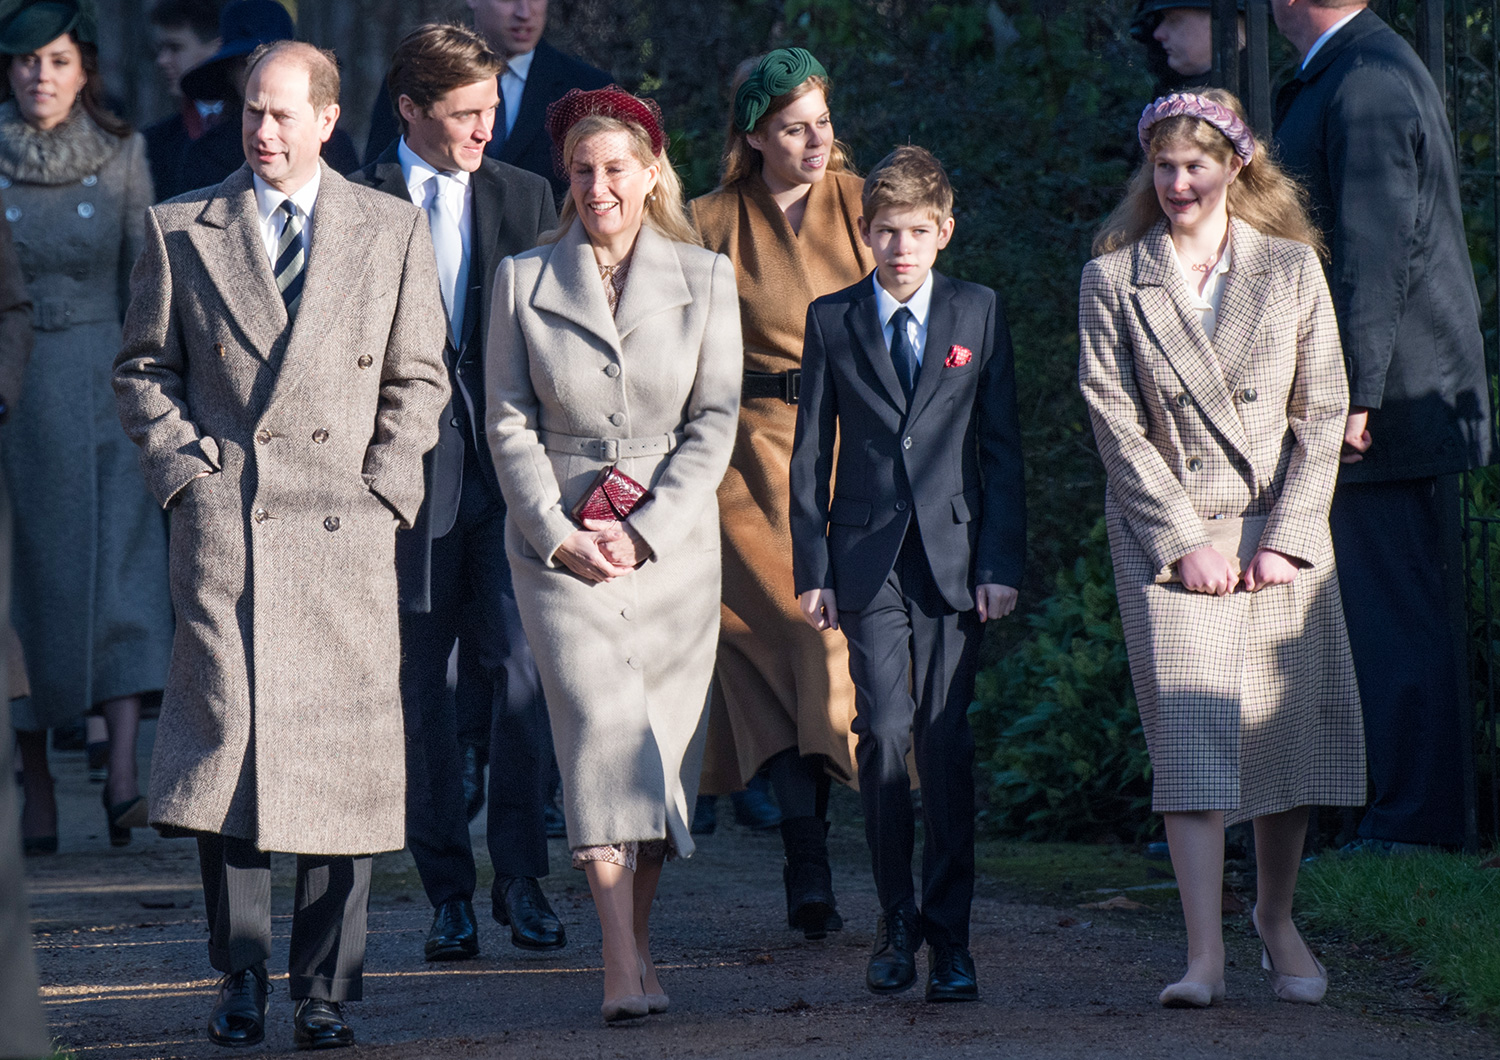 Prince Edward, Earl of Wessex and Sophie, Countess of Wessex with James Viscount Severn and Lady Louise Windsor attend the Christmas Day Church service at Church of St Mary Magdalene on the Sandringham estate on December 25, 2019 in King's Lynn, United Kingdom